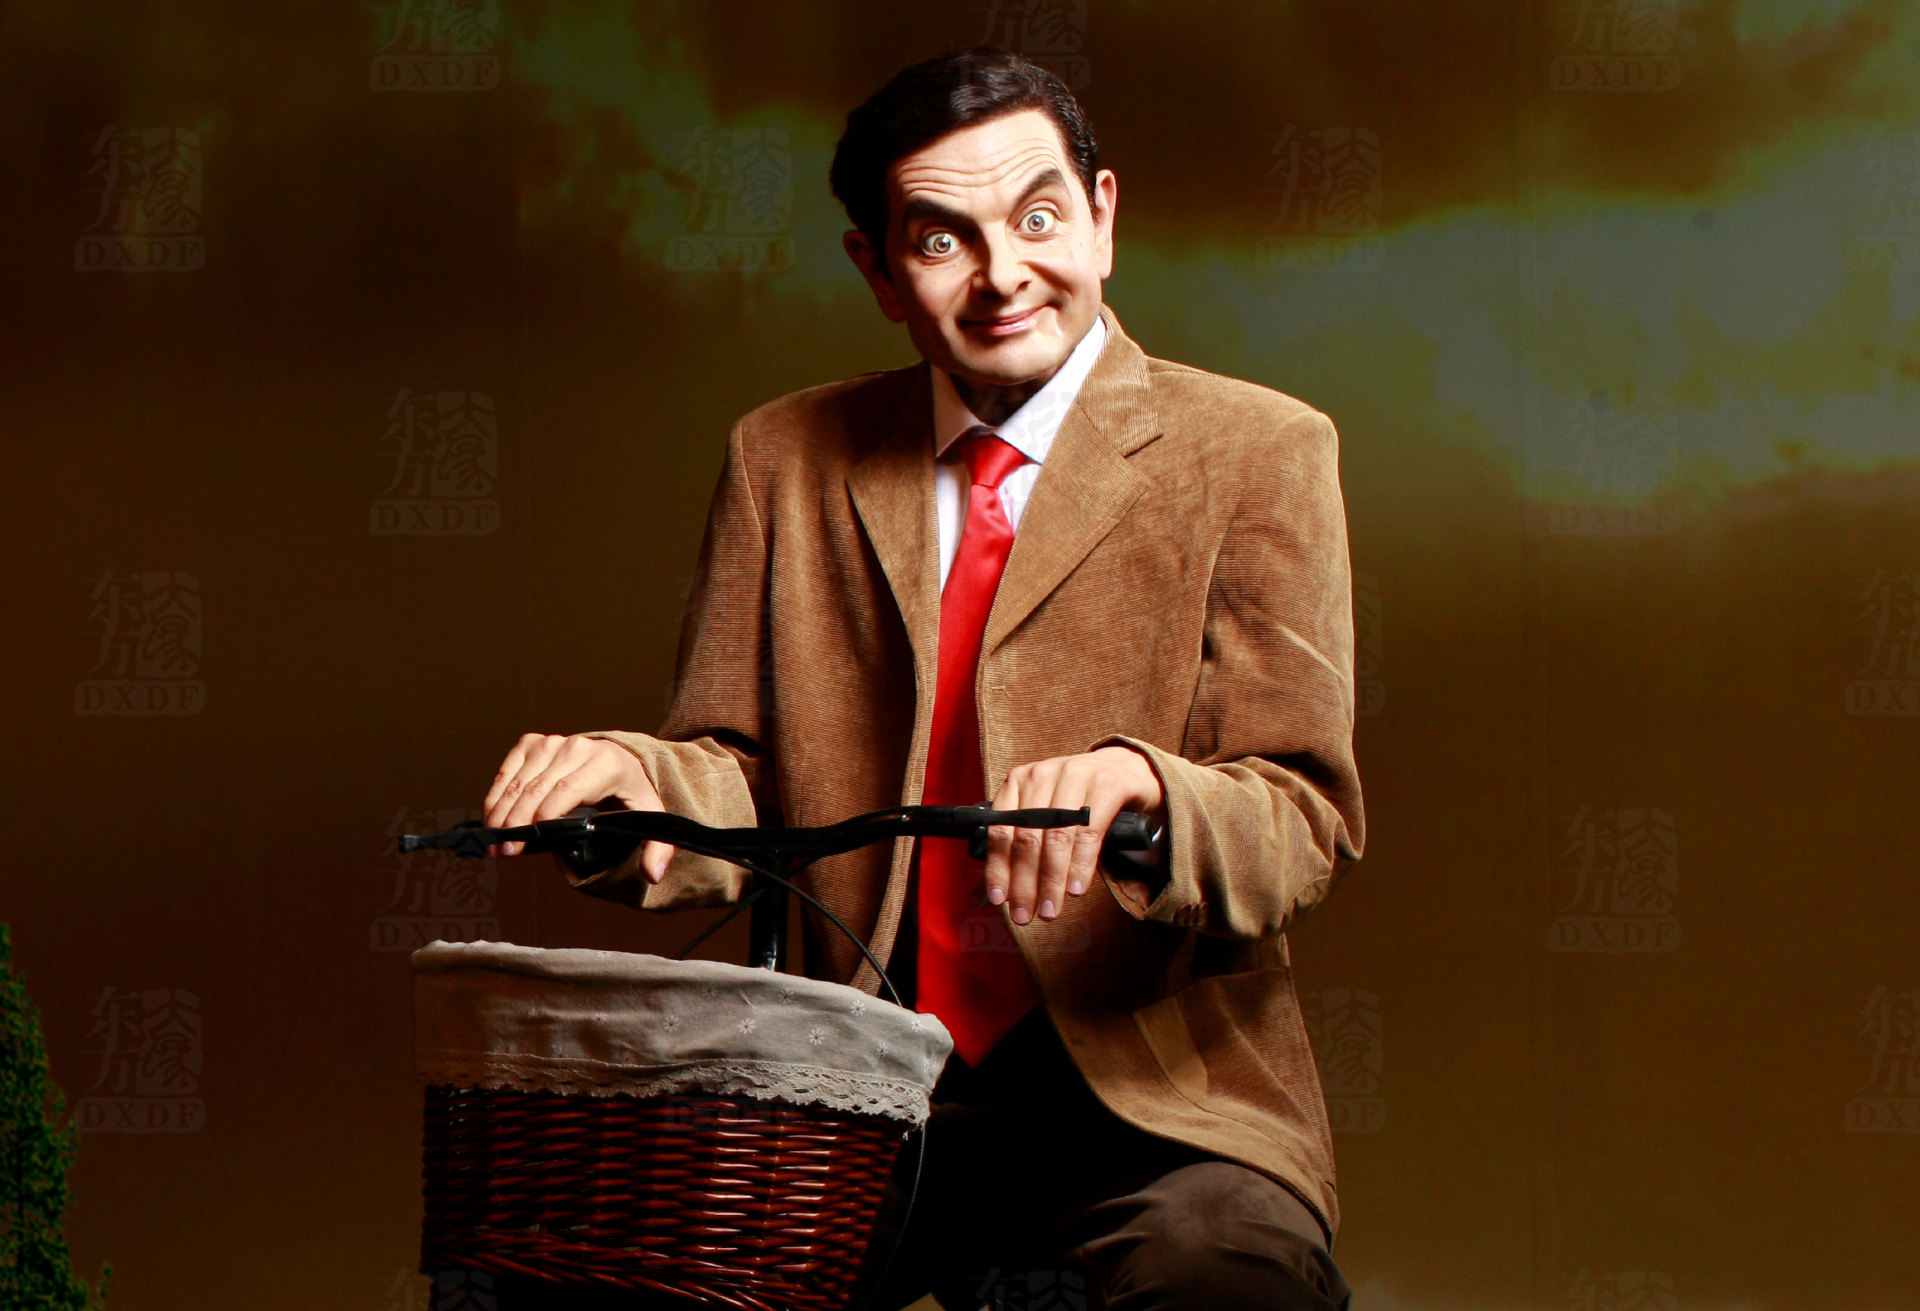 Most Realistic Wax Figures of Eminent Comedian Mr Bean